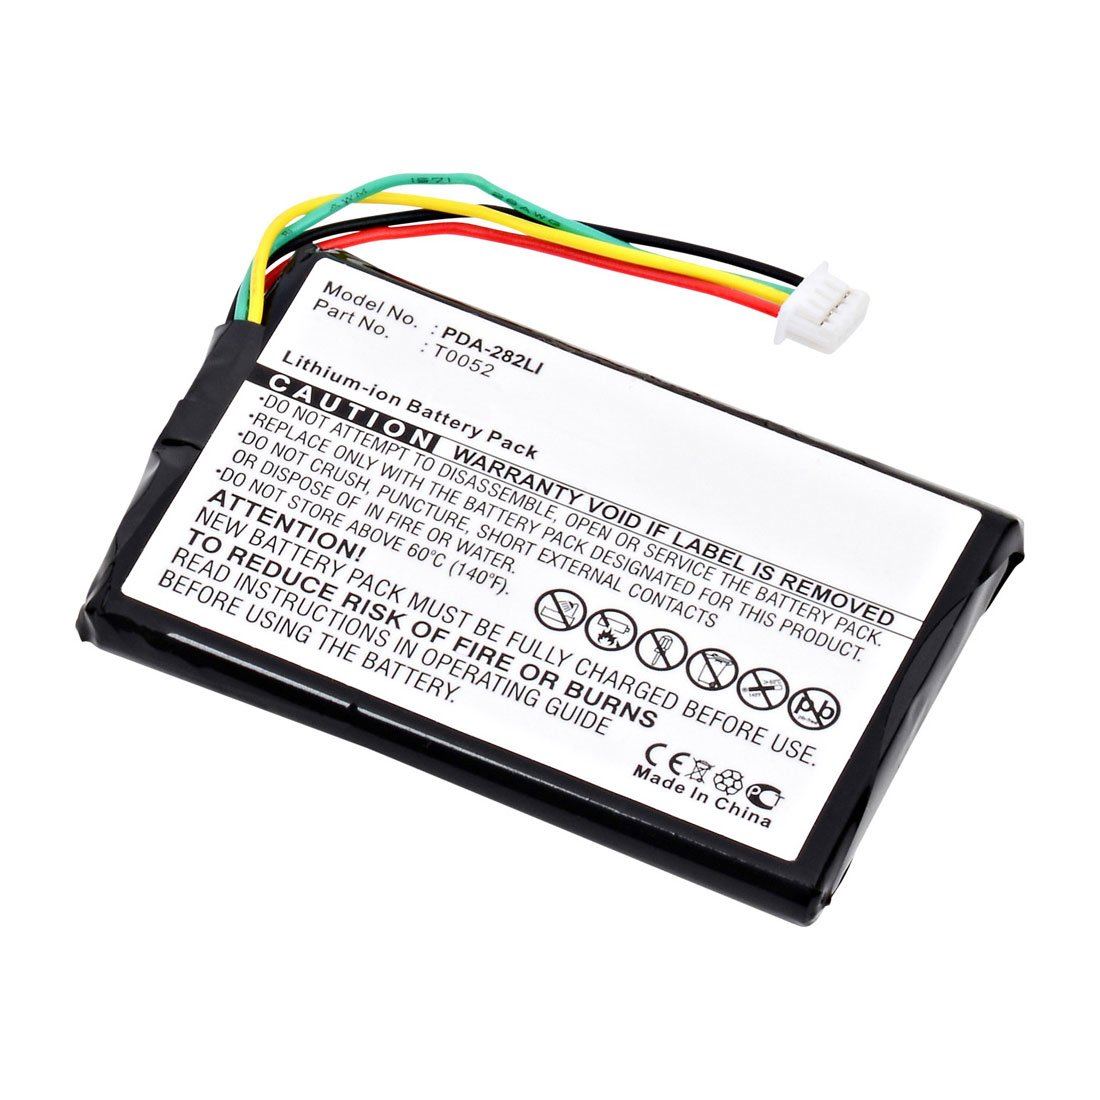 Replacement Magellan Maestro 3250 Battery: BatteryMart.com